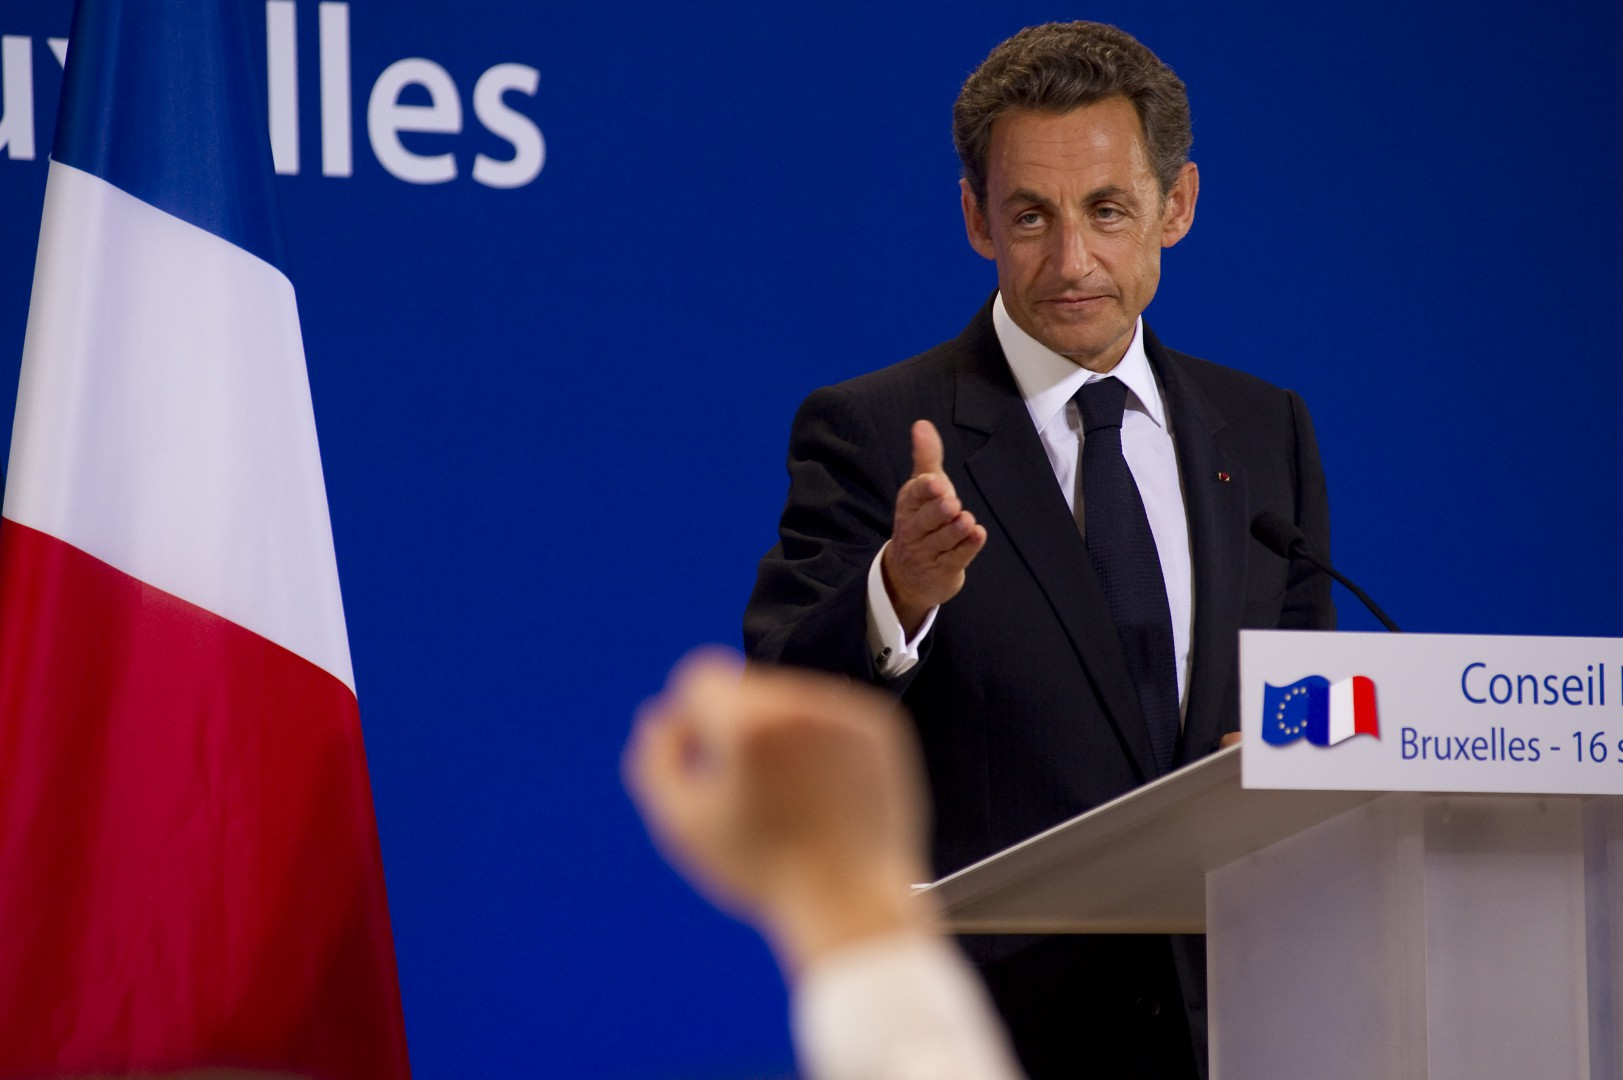 Belgium, Brussels, Sept 16 2010 - European Summit of Brussels - Press conference of the French President Nicolas Sarkozy  Pict by Eric Herchaft © Reporters